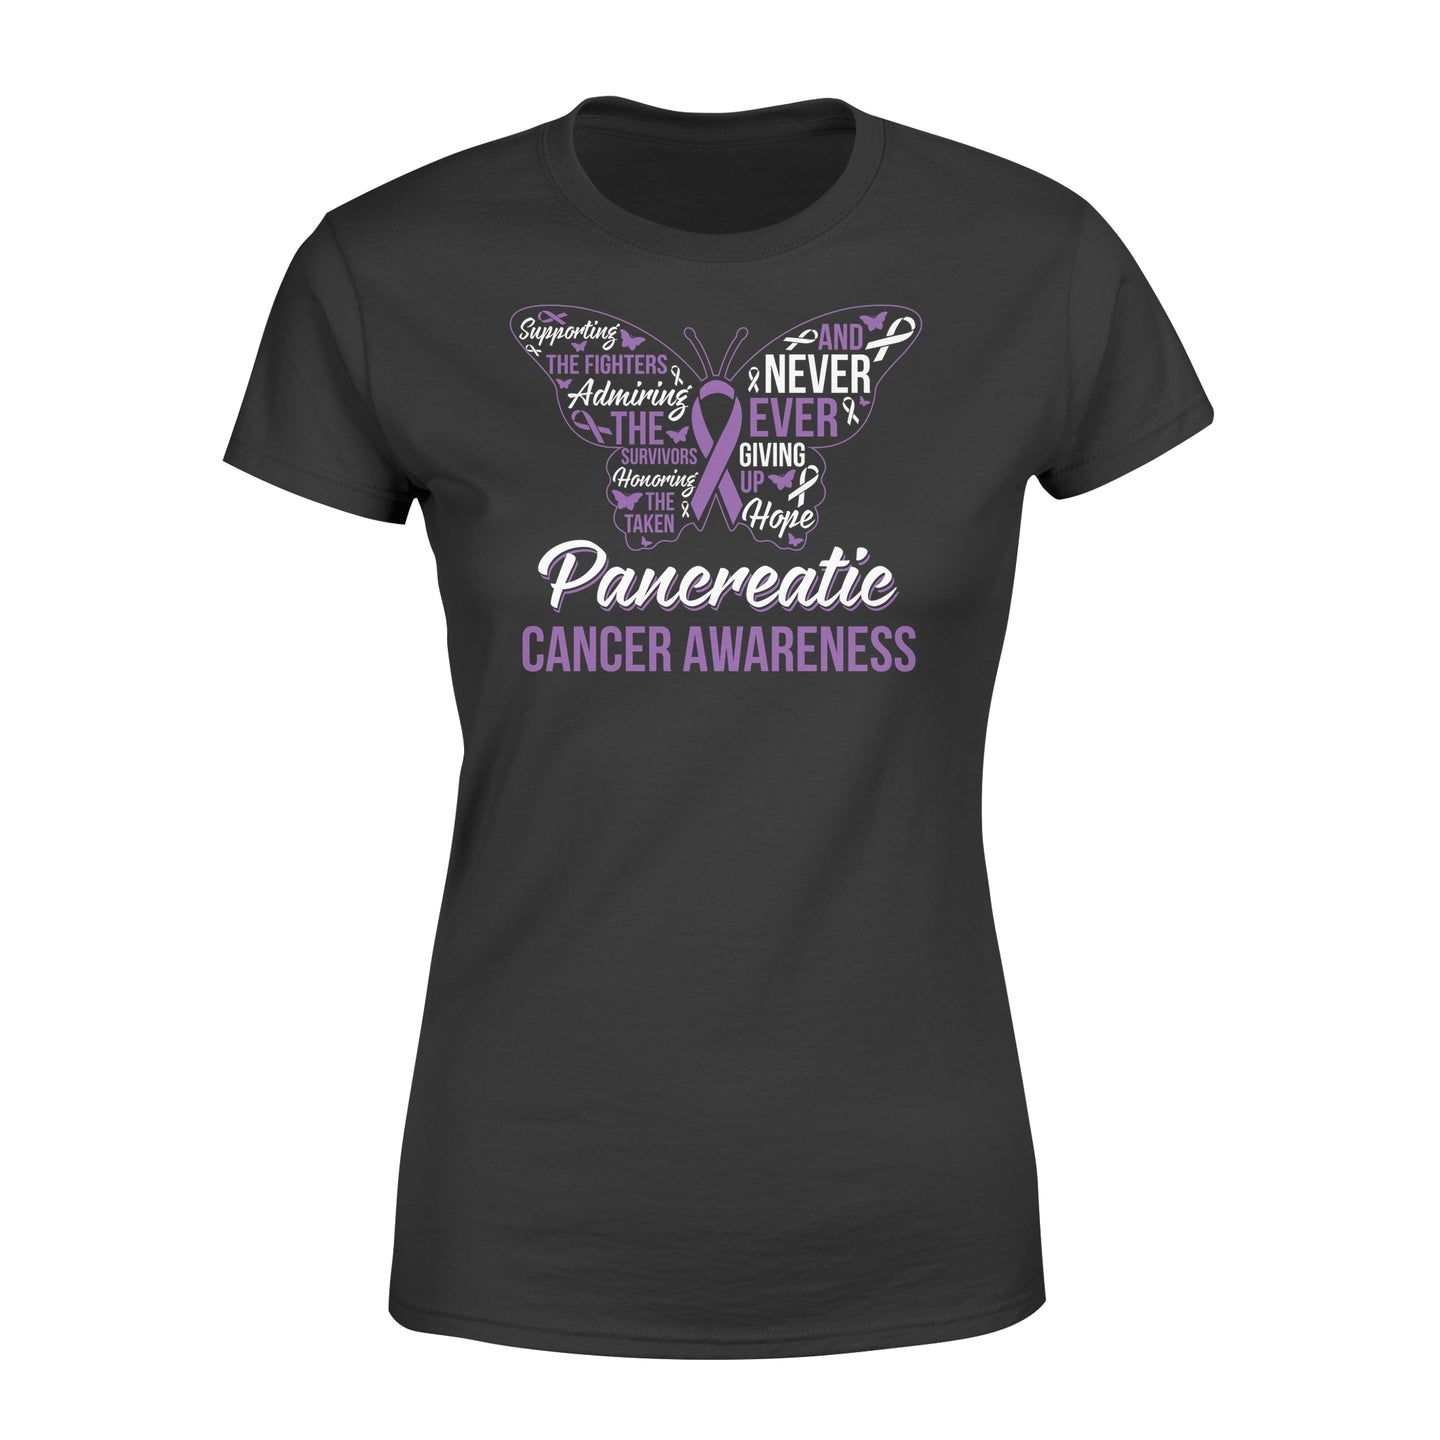 Never Ever Giving Up Hope Pancreatic Cancer - Standard Women's T-shirt Apparel XS / Black